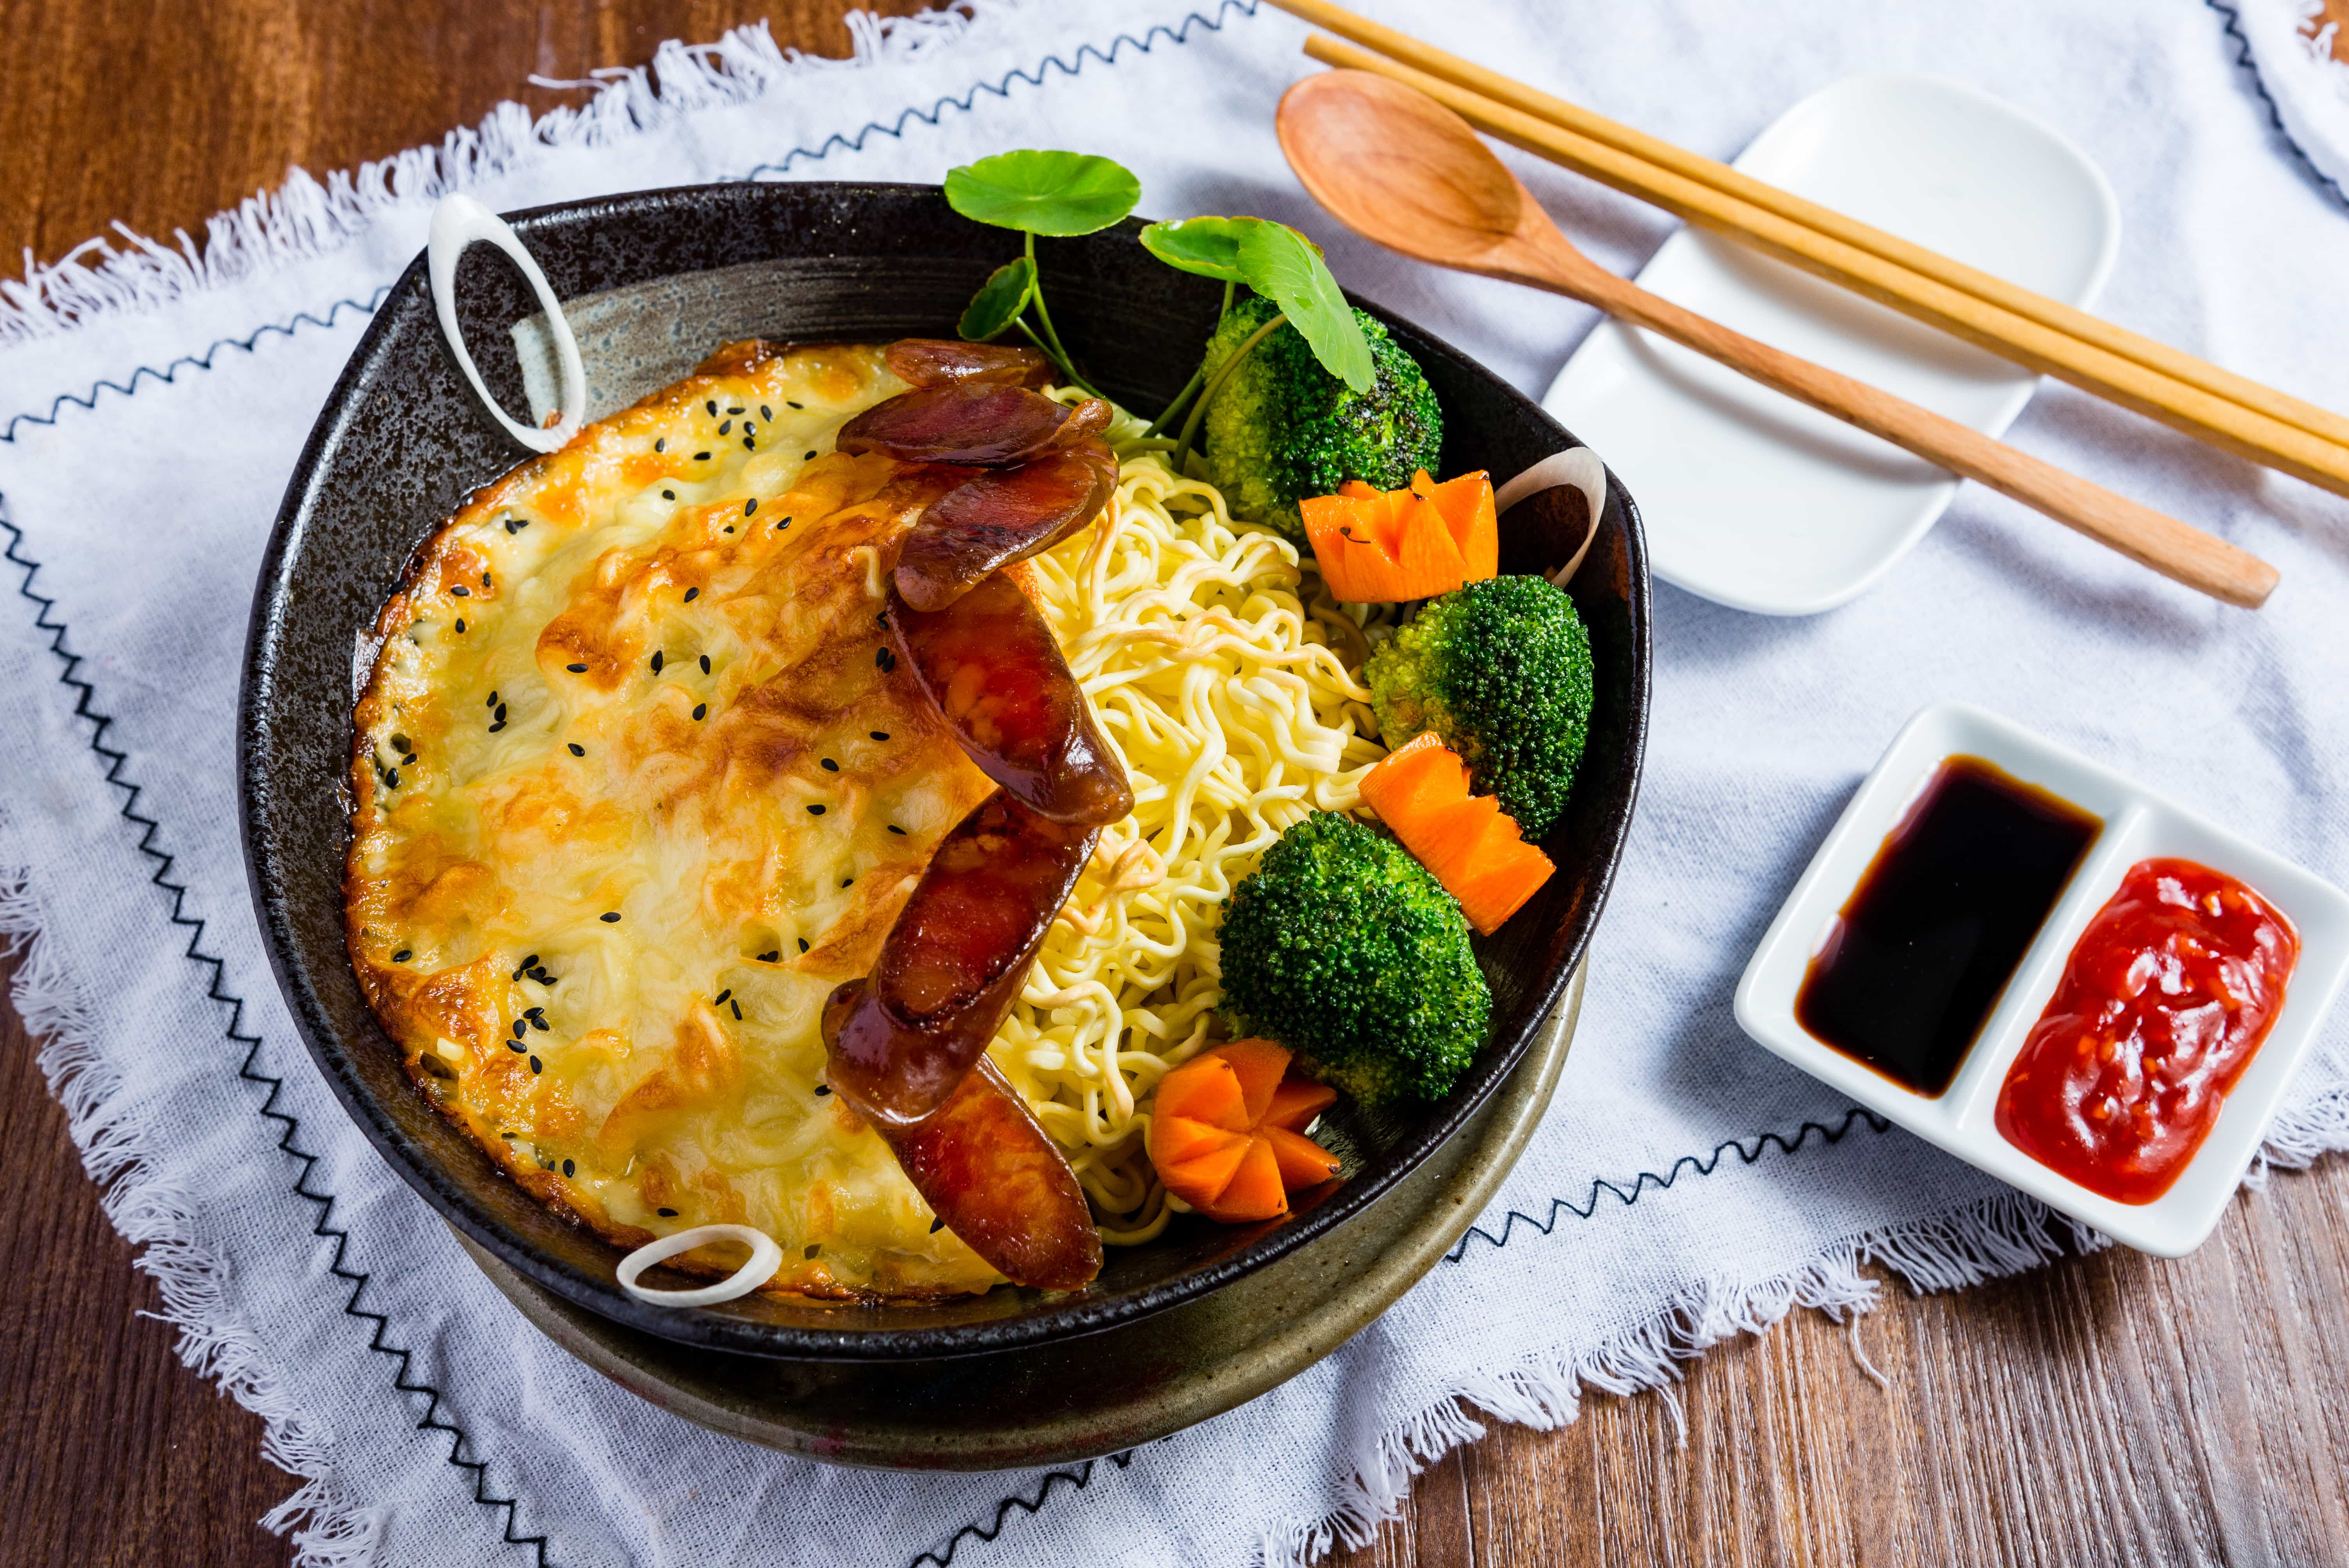 Spicy Grilled Noodles With Baked Cheese